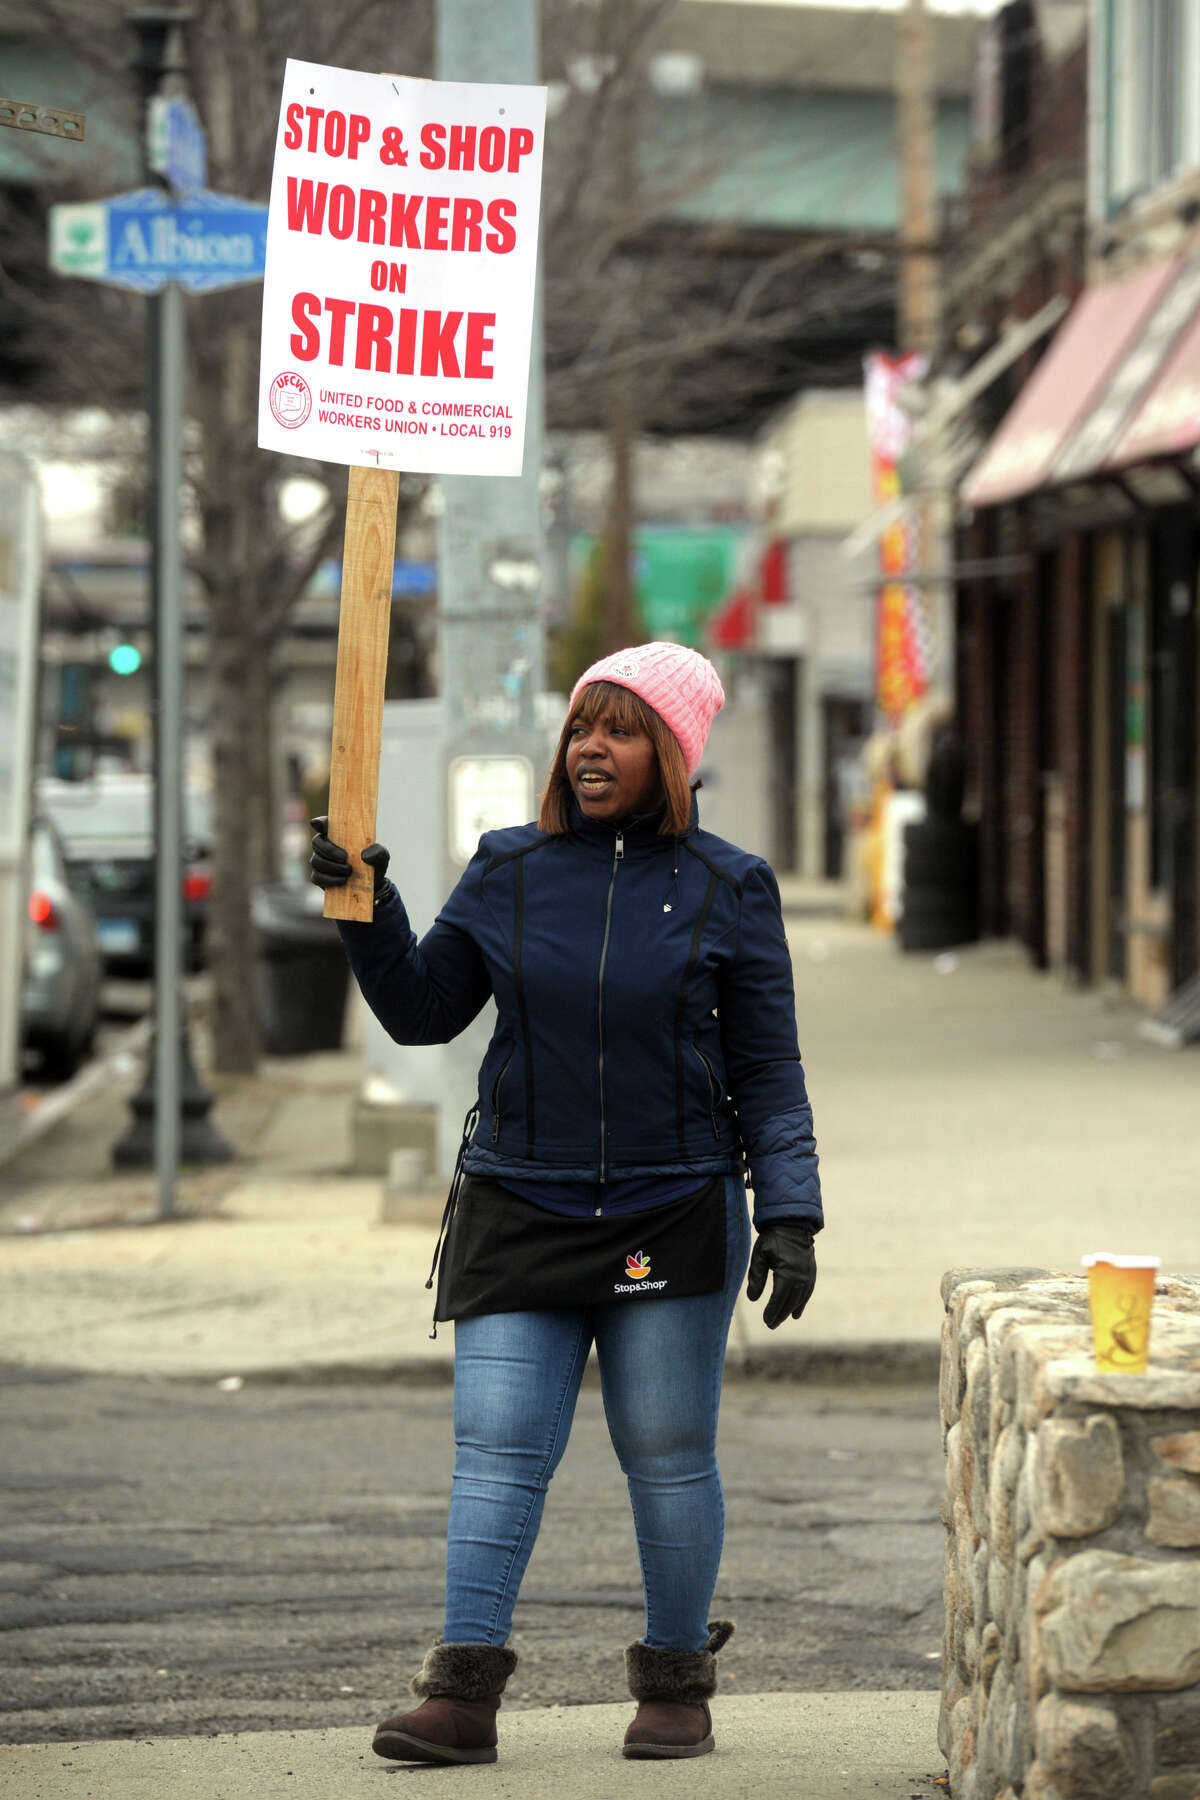 Reasheba McGhie, a pricing clerk at the Stop & Shop on Fairfield Ave., in Bridgeport, Conn. pickets in front of the store after she and her fellow union workers walked out on strike April 11, 2019. Stop & Shop employees across Connecticut and New England walked out on strike Thursday after failing to resolve a contract impasse.